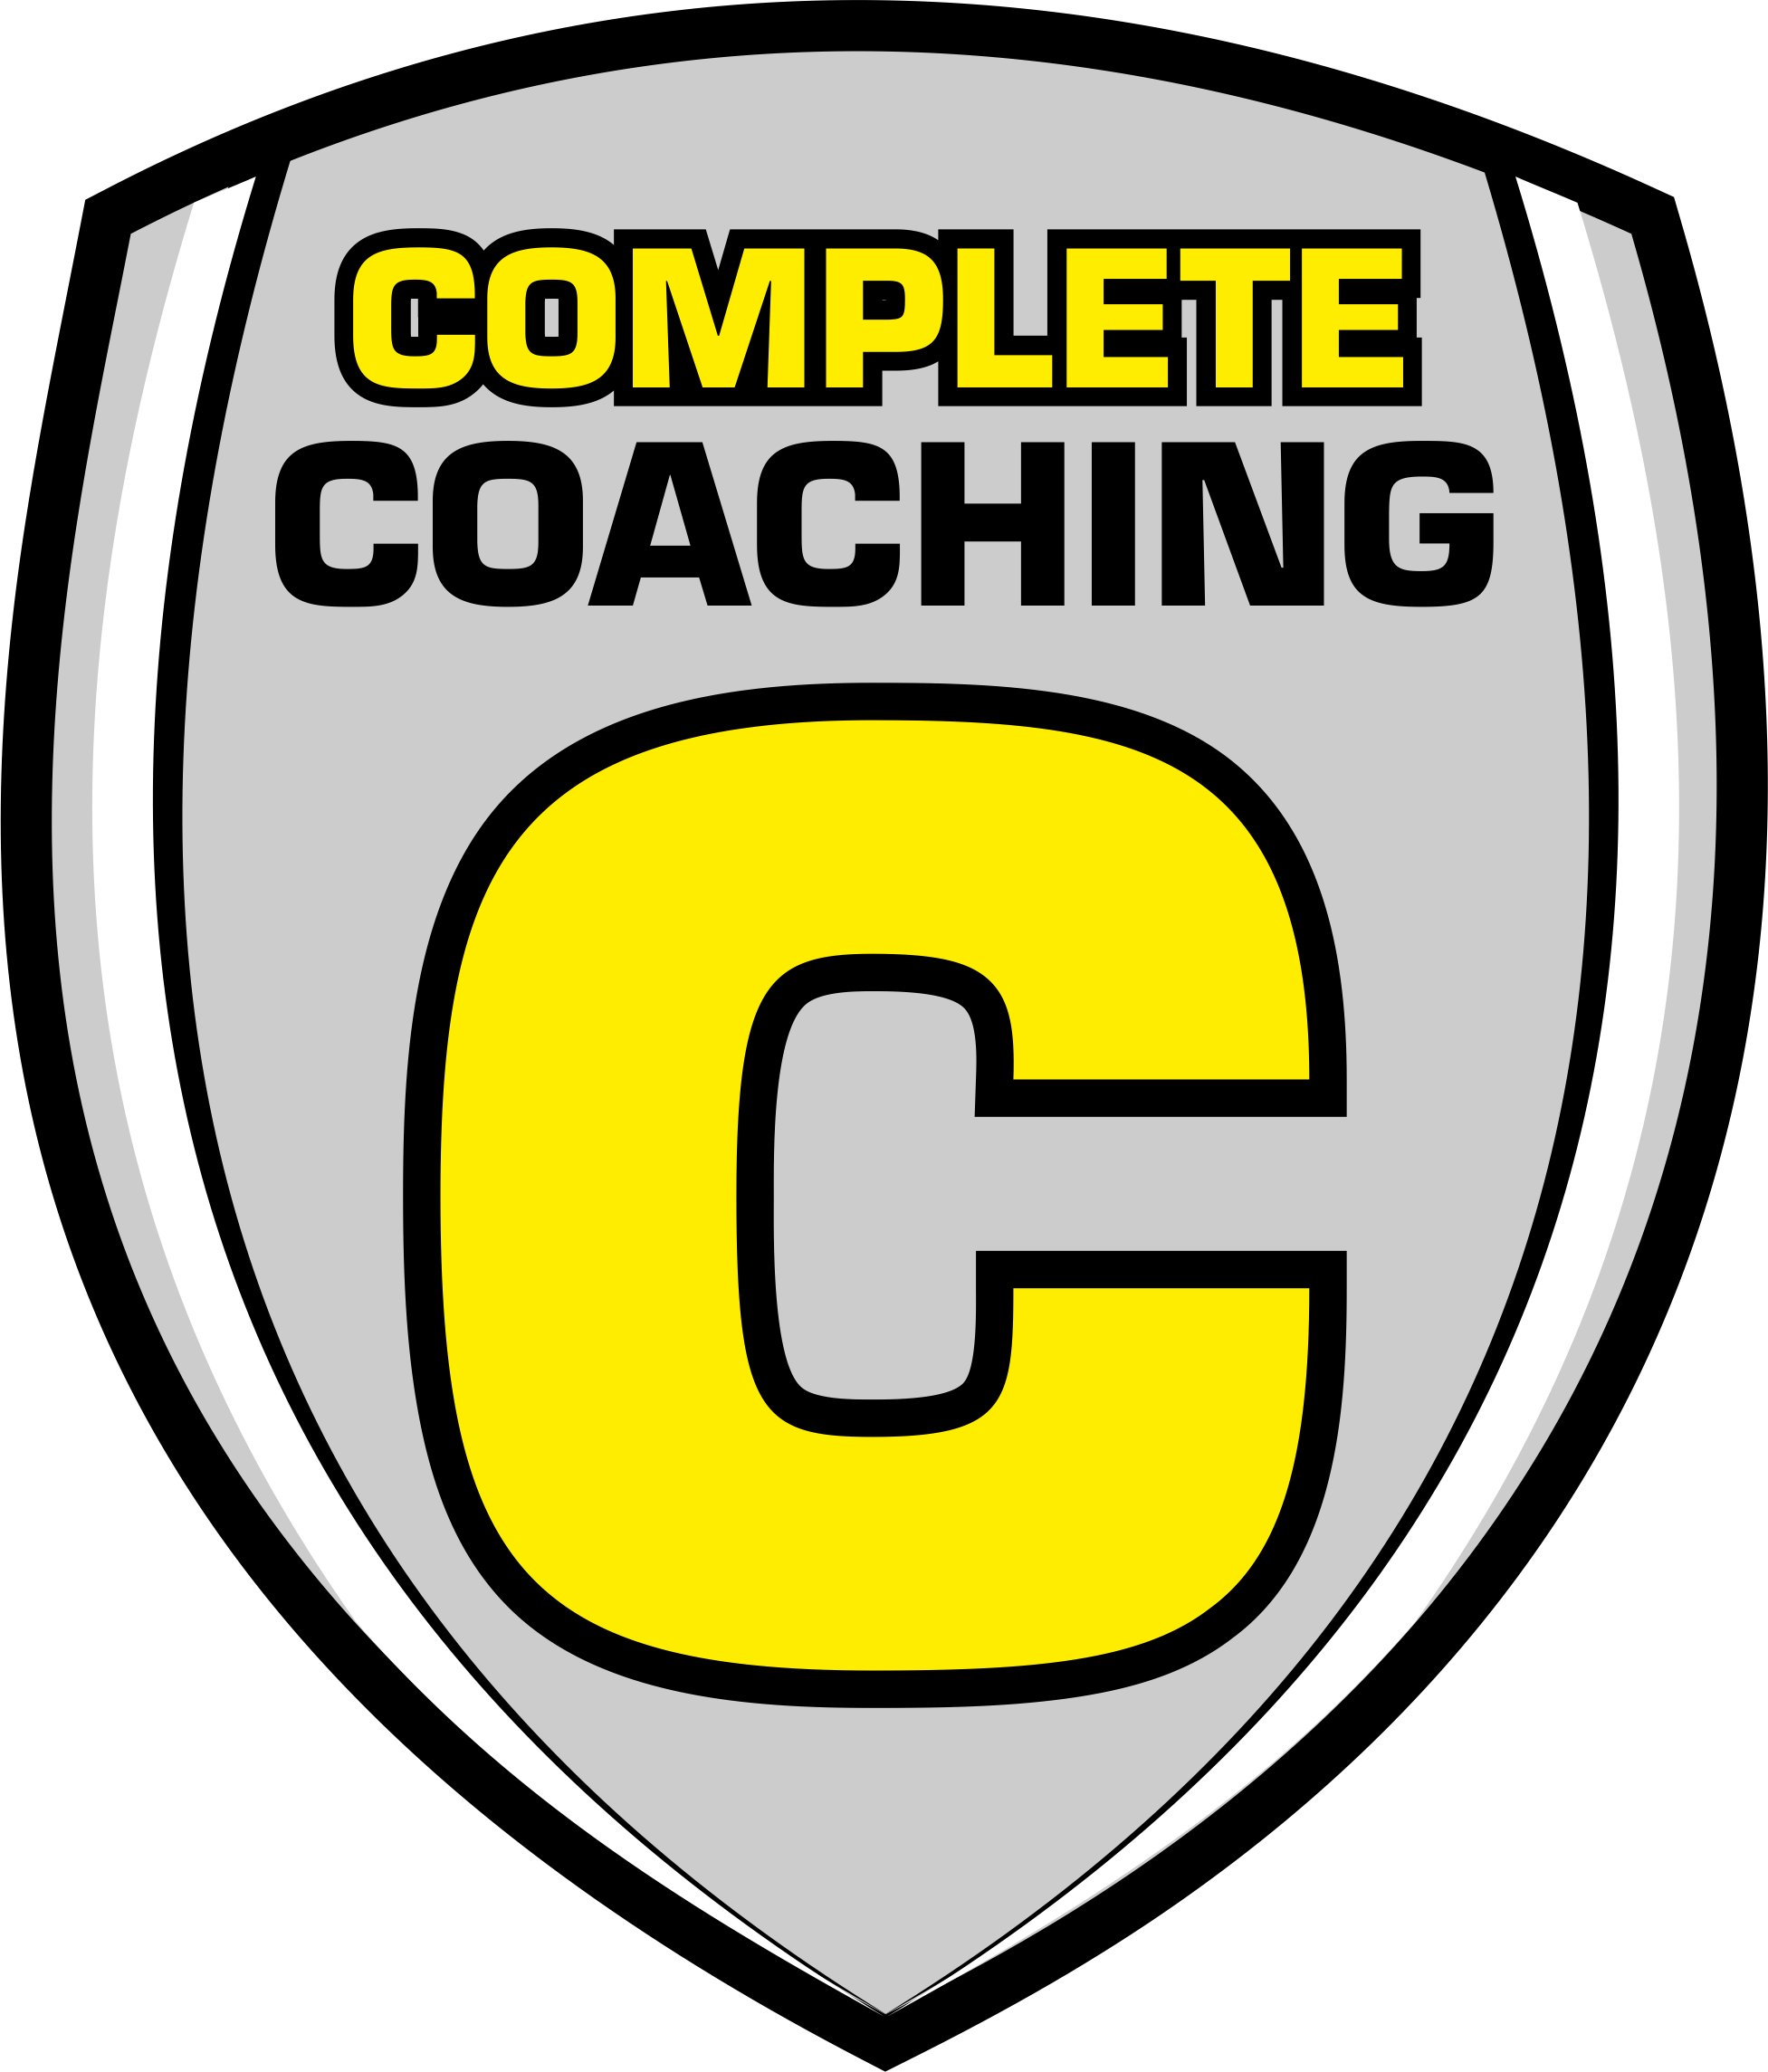 Complete Coaching